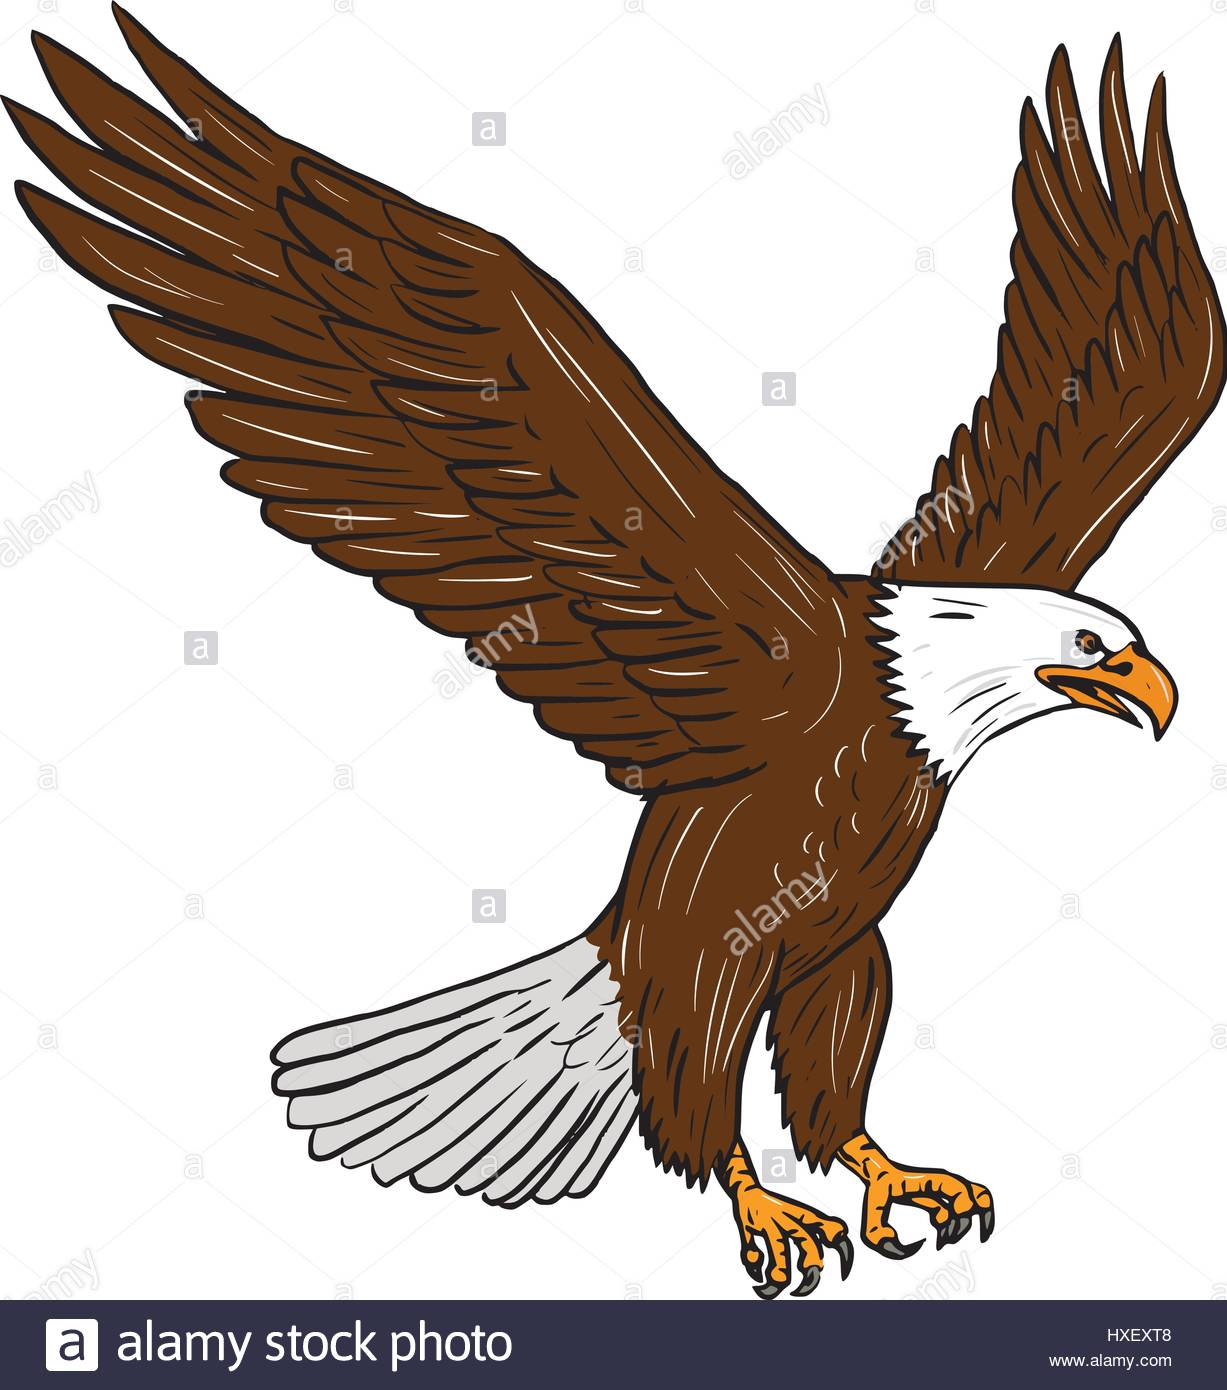 1227x1390 Drawing Sketch Style Illustration Of Bald Eagle Flying Wings